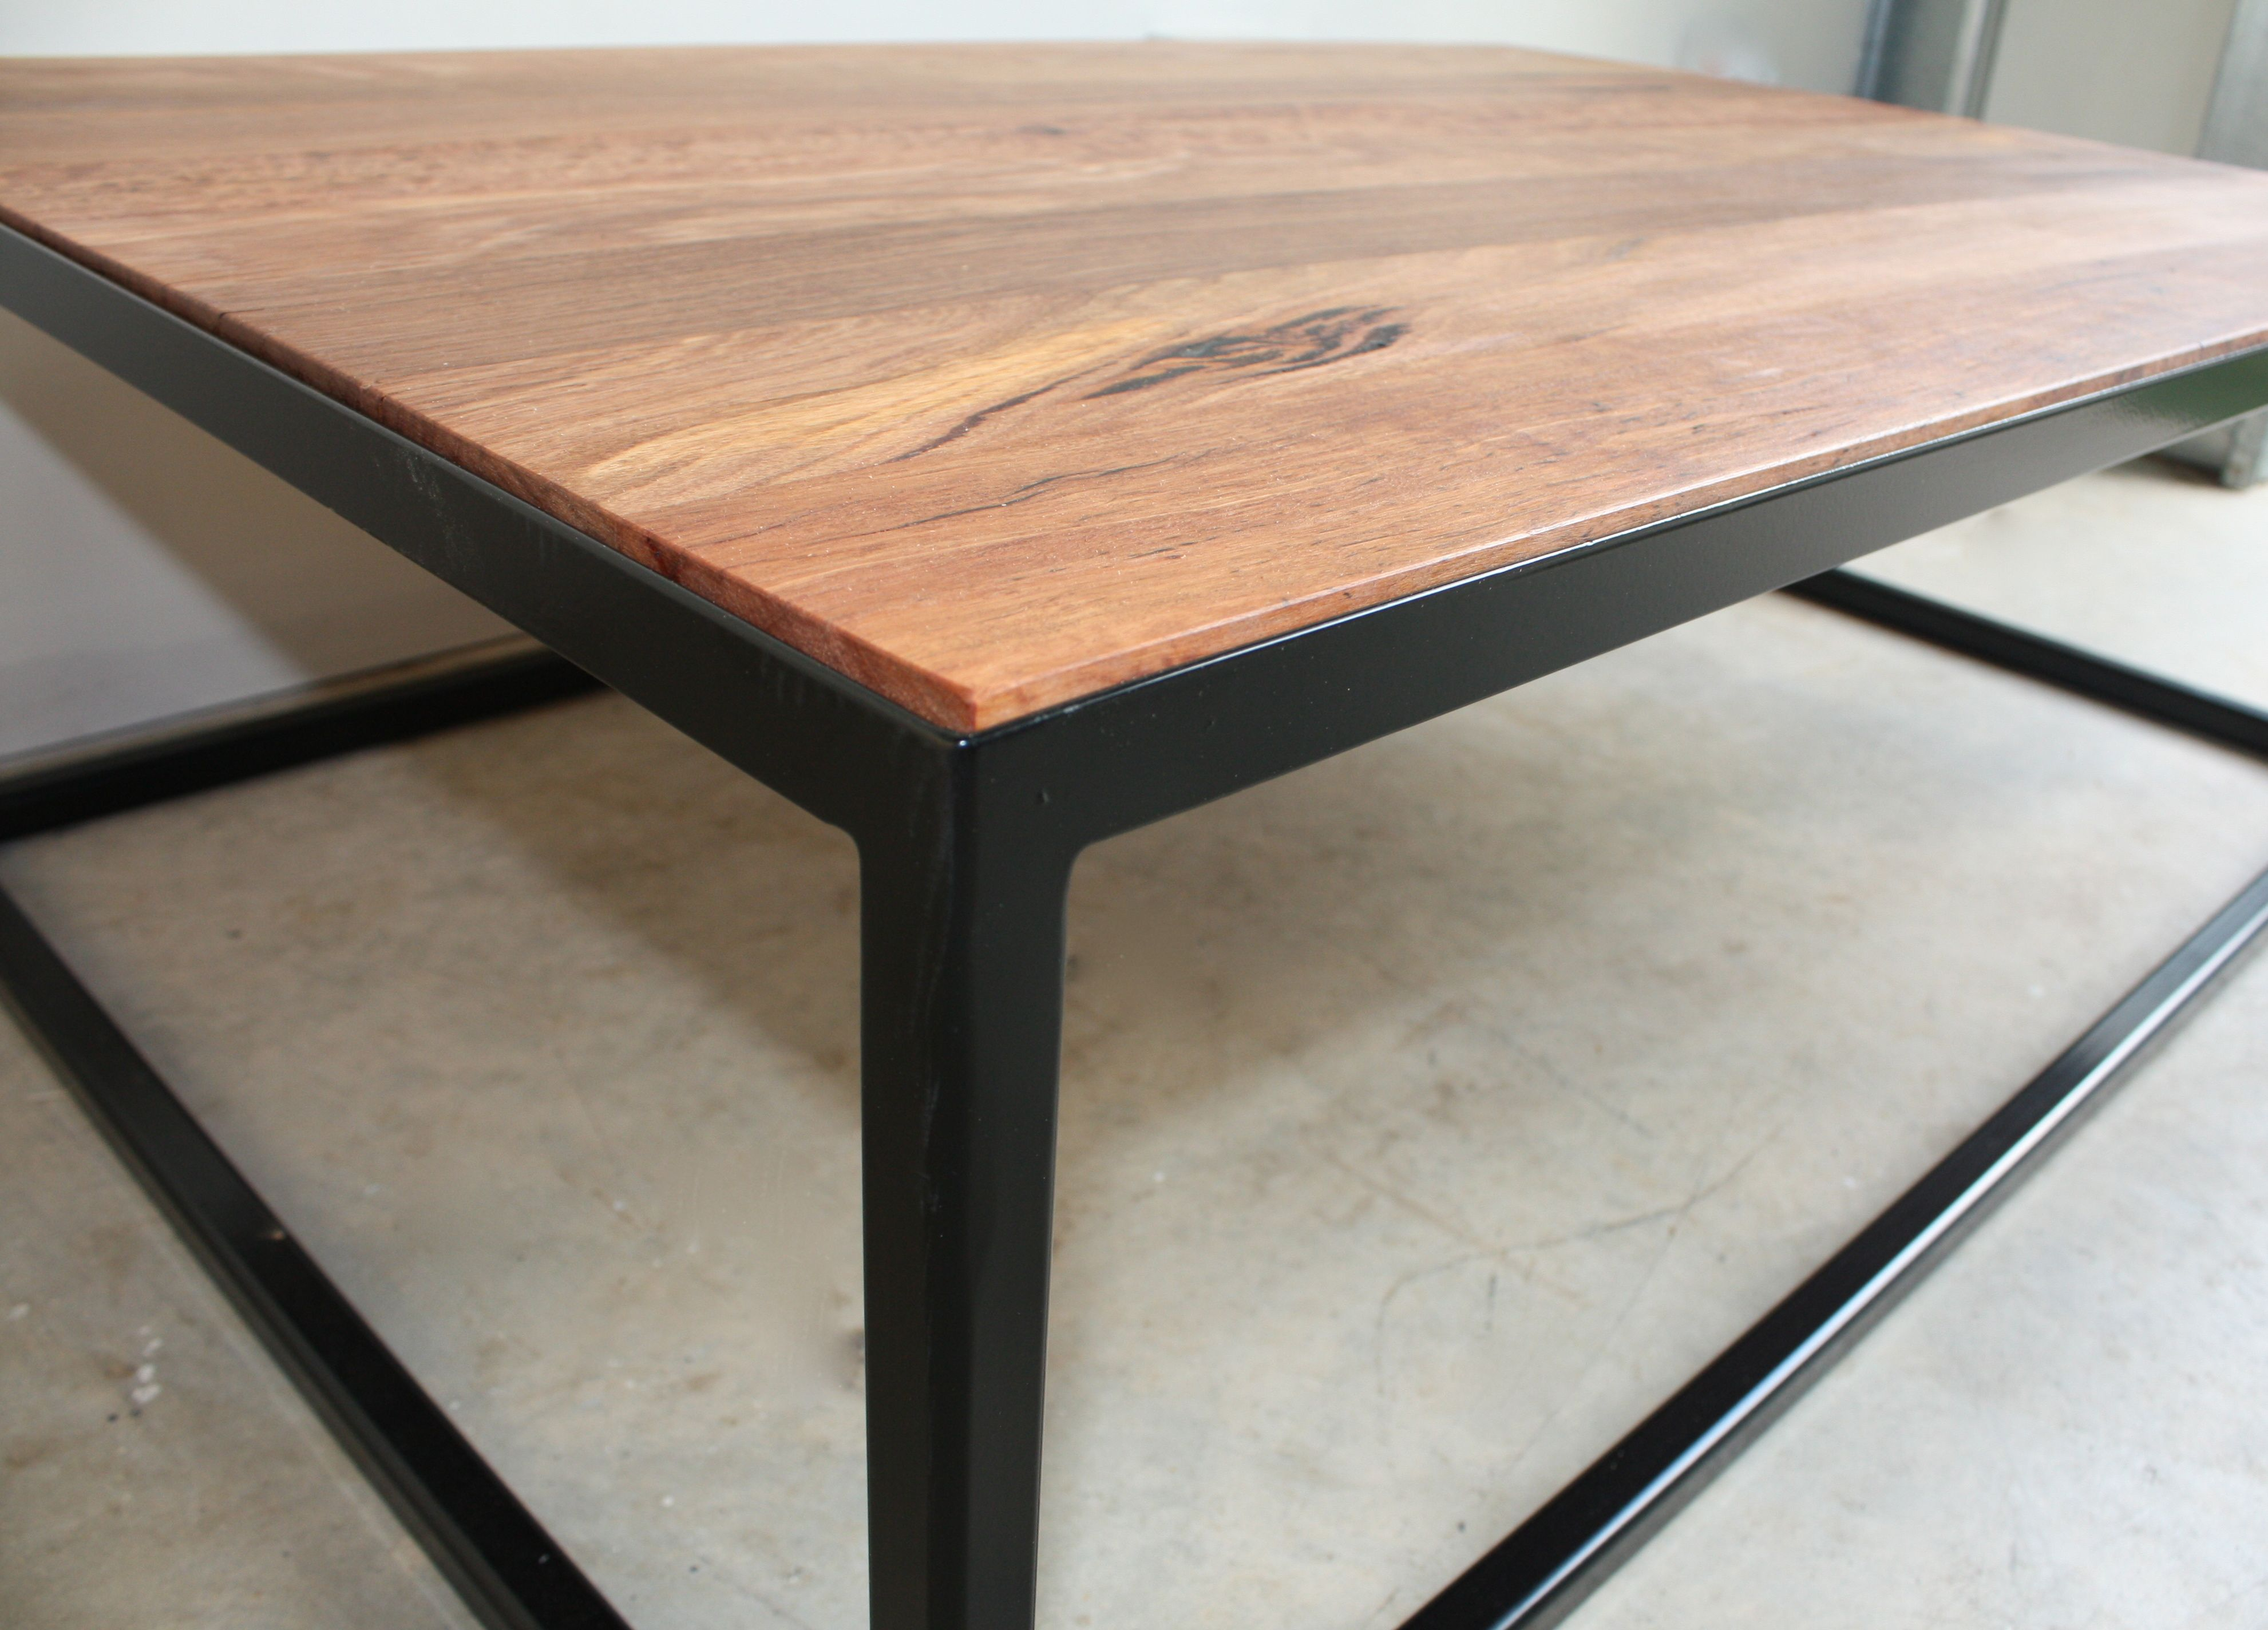 The James Coffee Table By Woodspoke Recycled Messmate Top Recessed